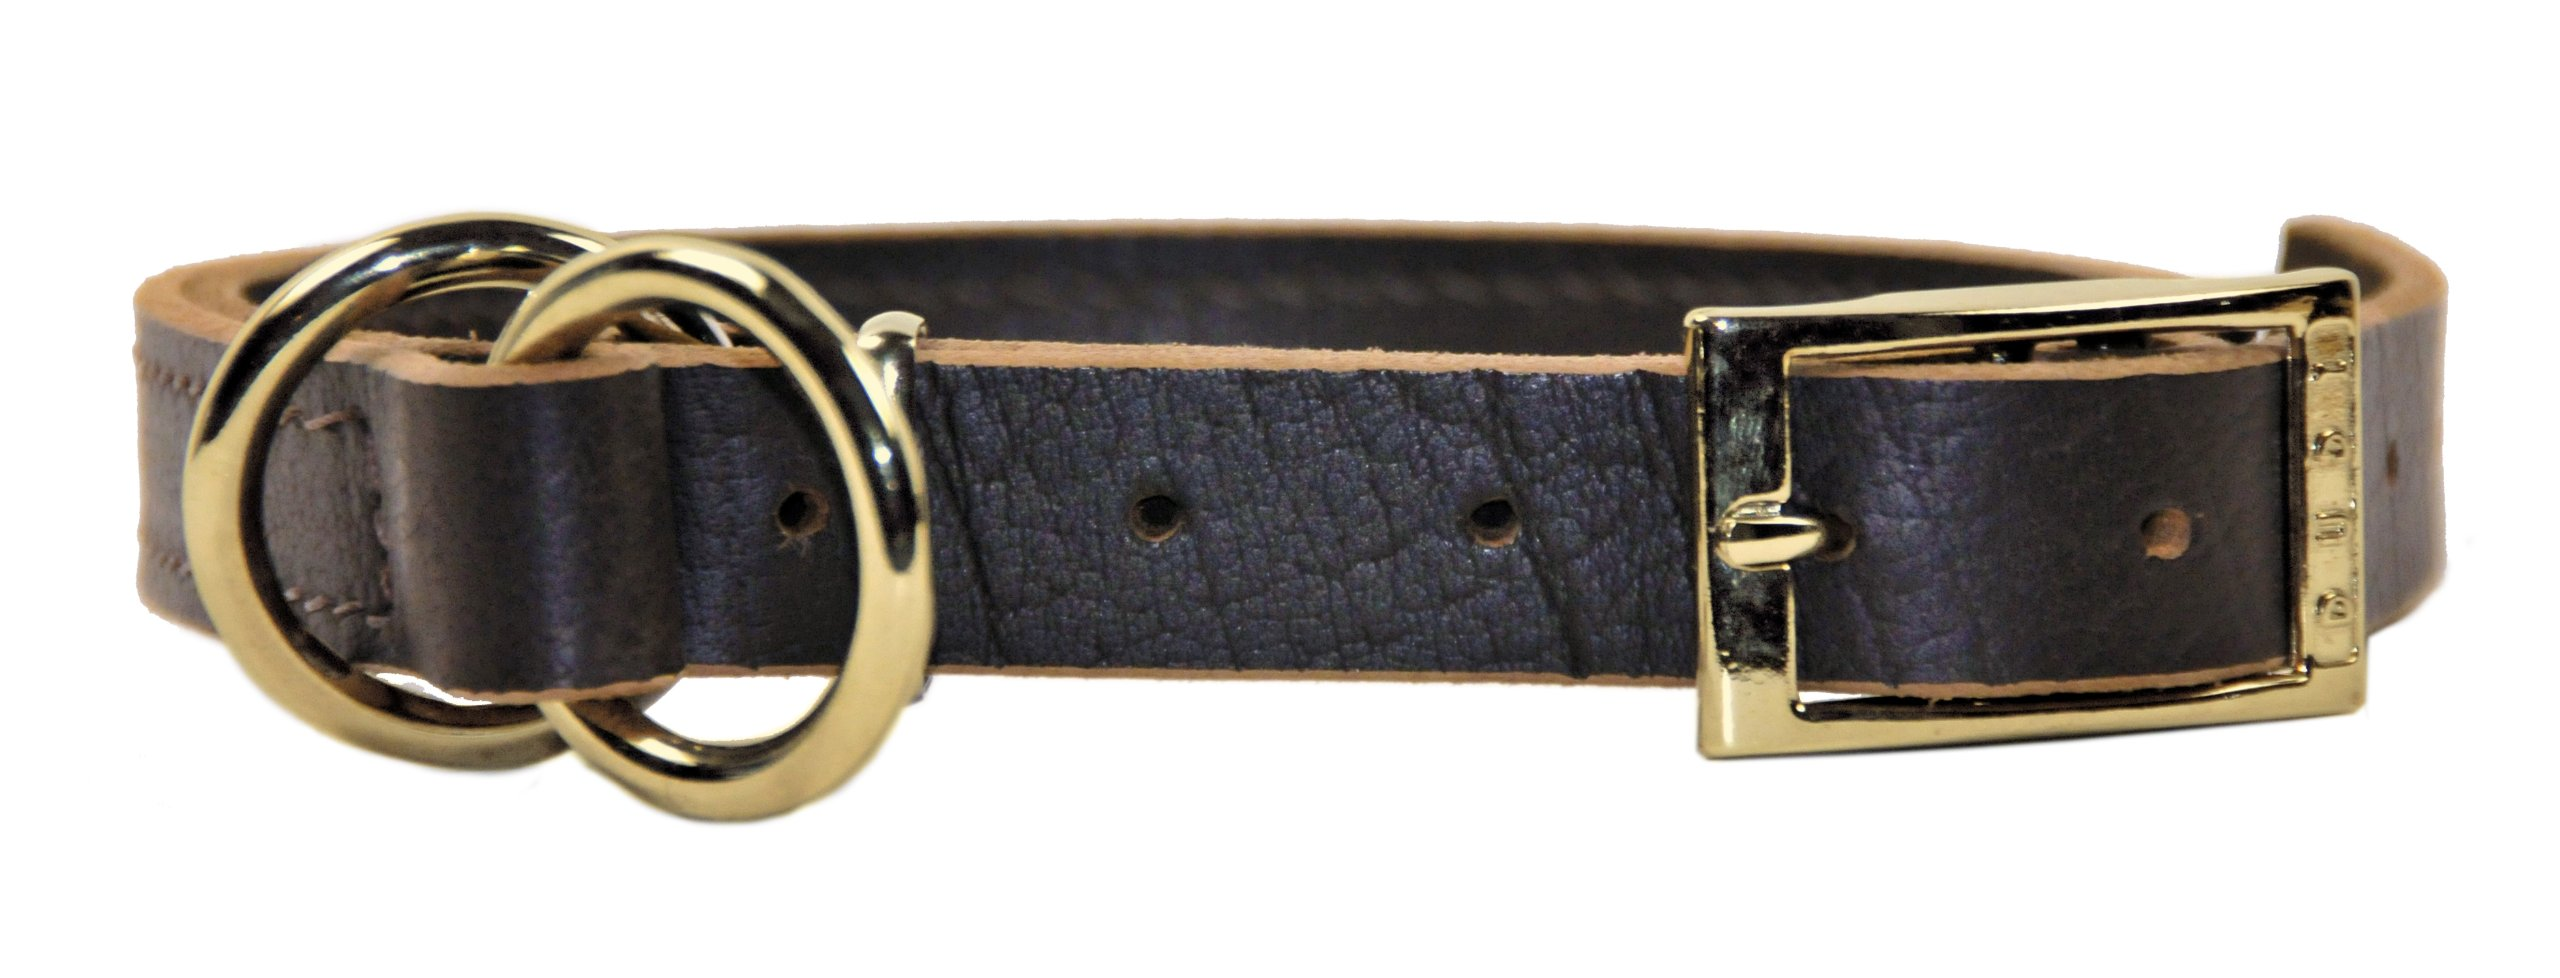 Dean and Tyler ''STRICTLY BUSINESS'', 2-in-1 Dog Choke Collar with Solid Brass Hardware - Brown - Size 18-Inch by 1-Inch - Fits Neck 16-Inch to 18-Inch